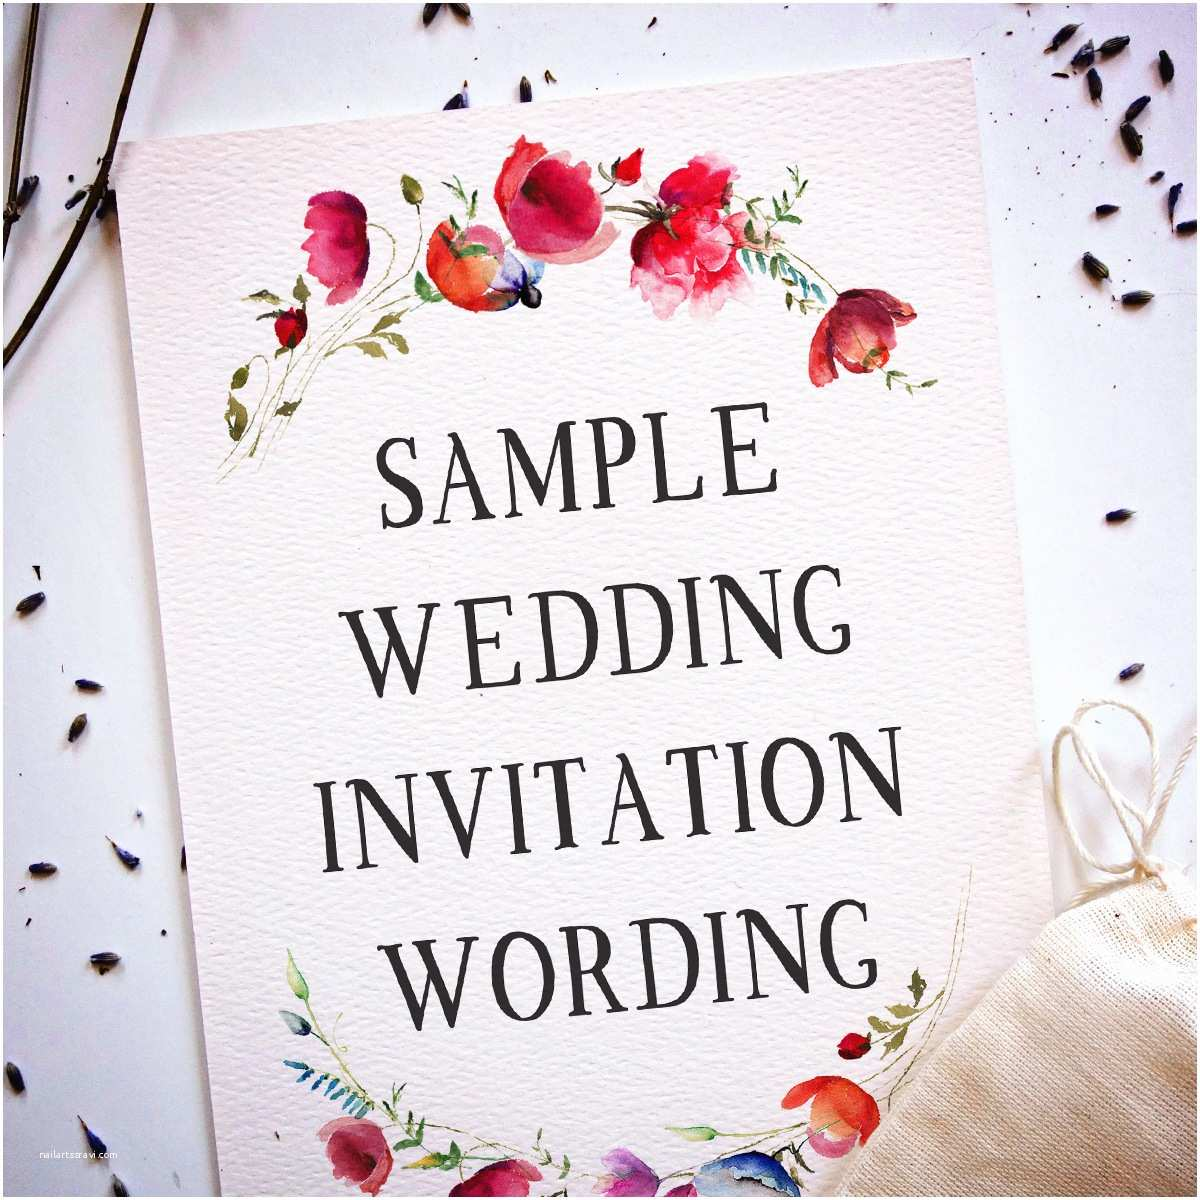 What Do You Say On A Wedding Invitation Wedding Invitation Wording Samples From Traditional to